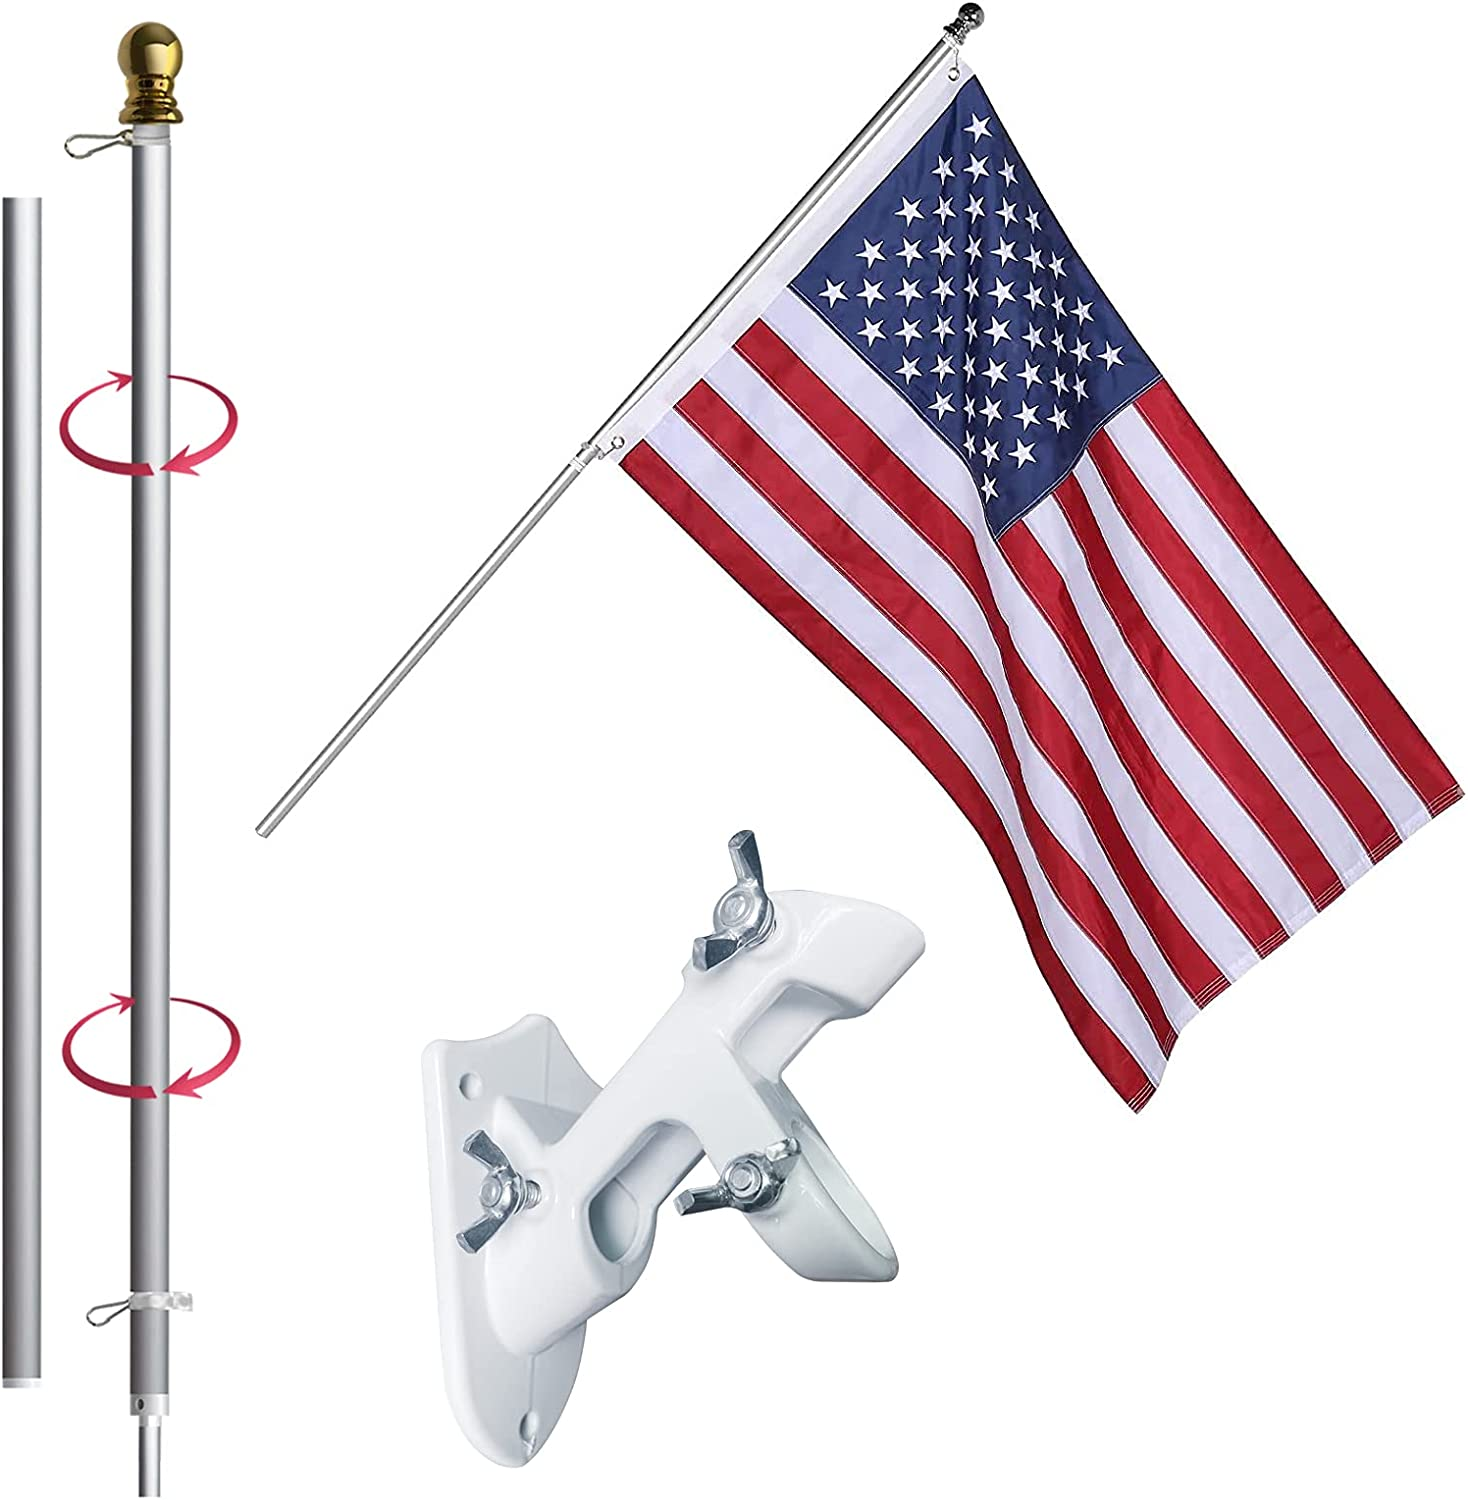 3x5 Dedication American Flag with Pole Including safety 6 US ft Embroidered